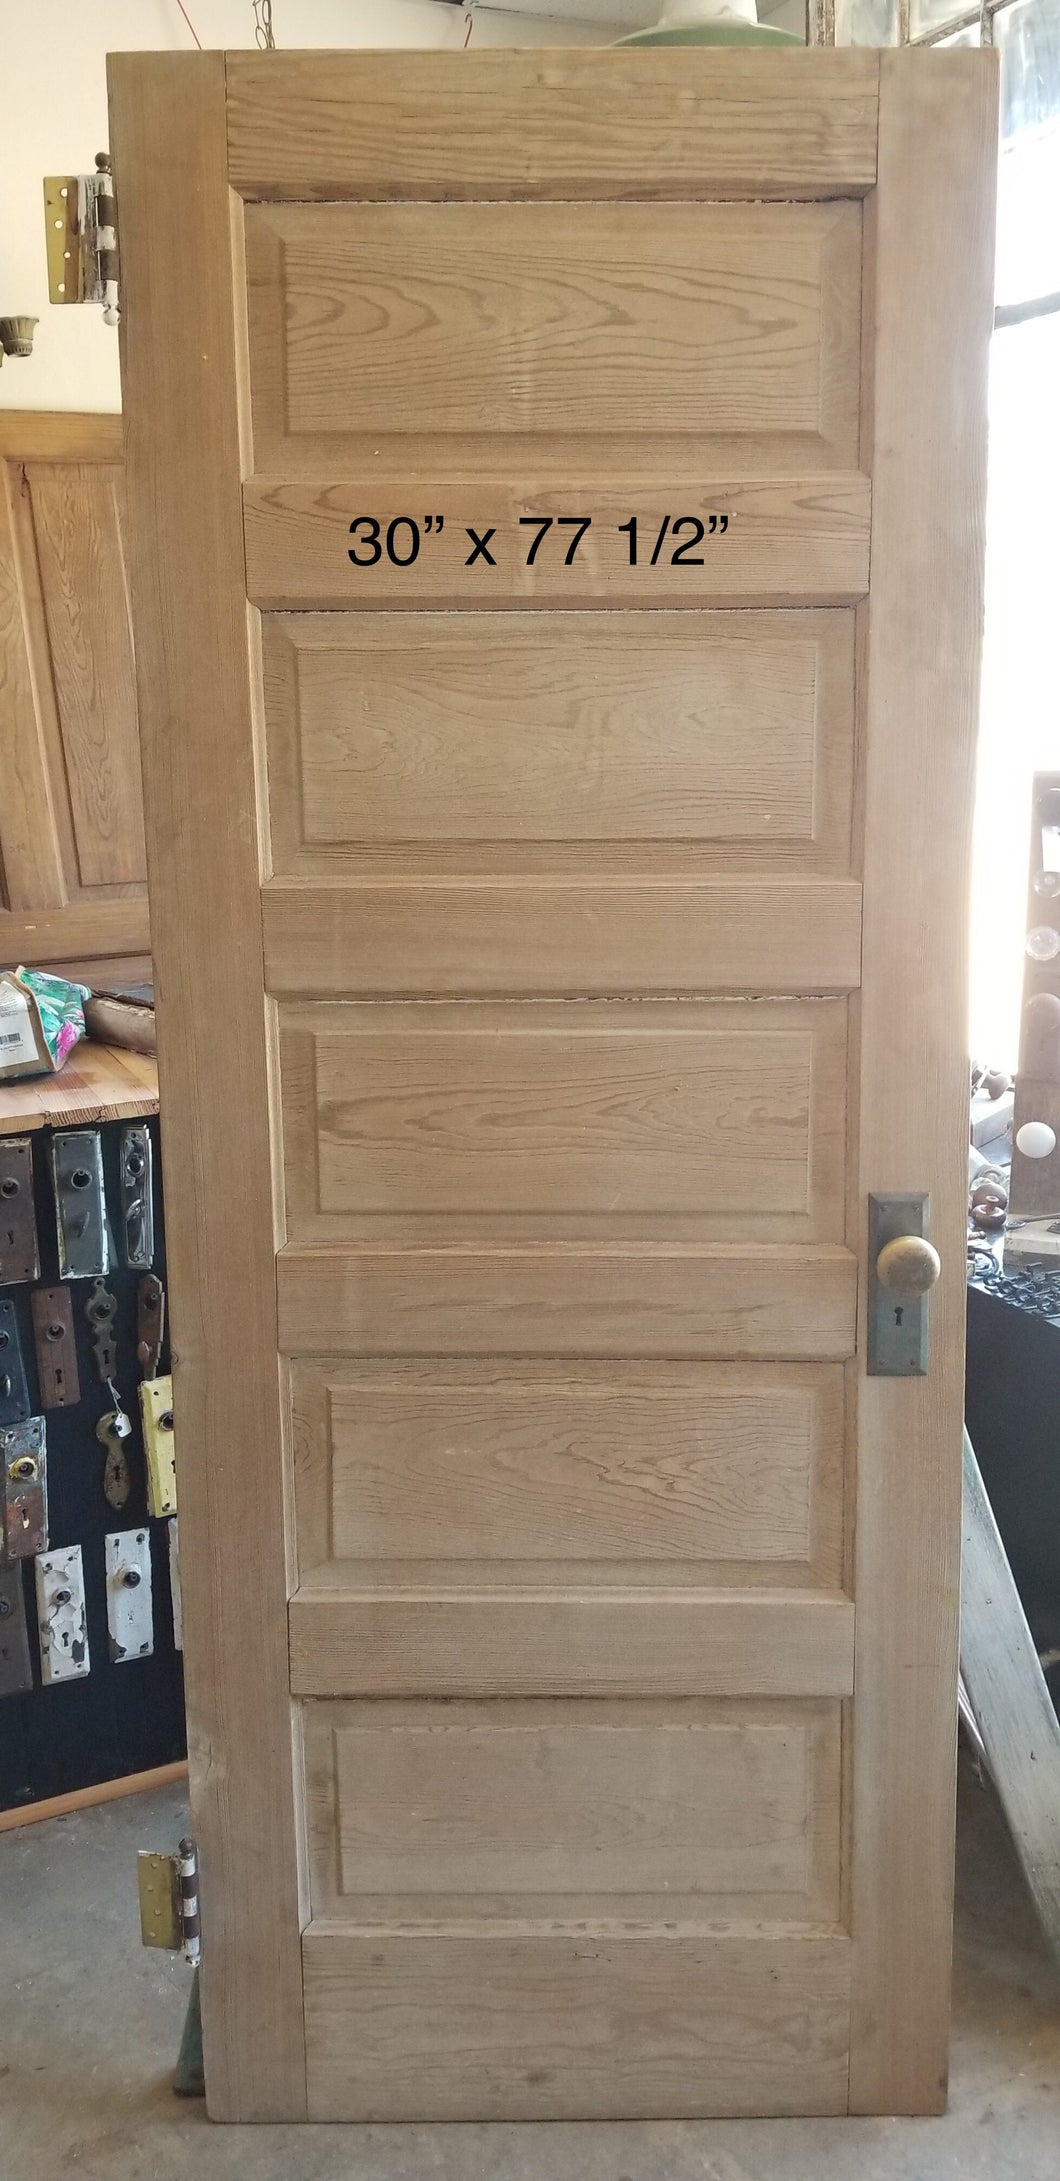 "30"" x 77 1/2"" Pine 5 panel bedroom door with hardware"